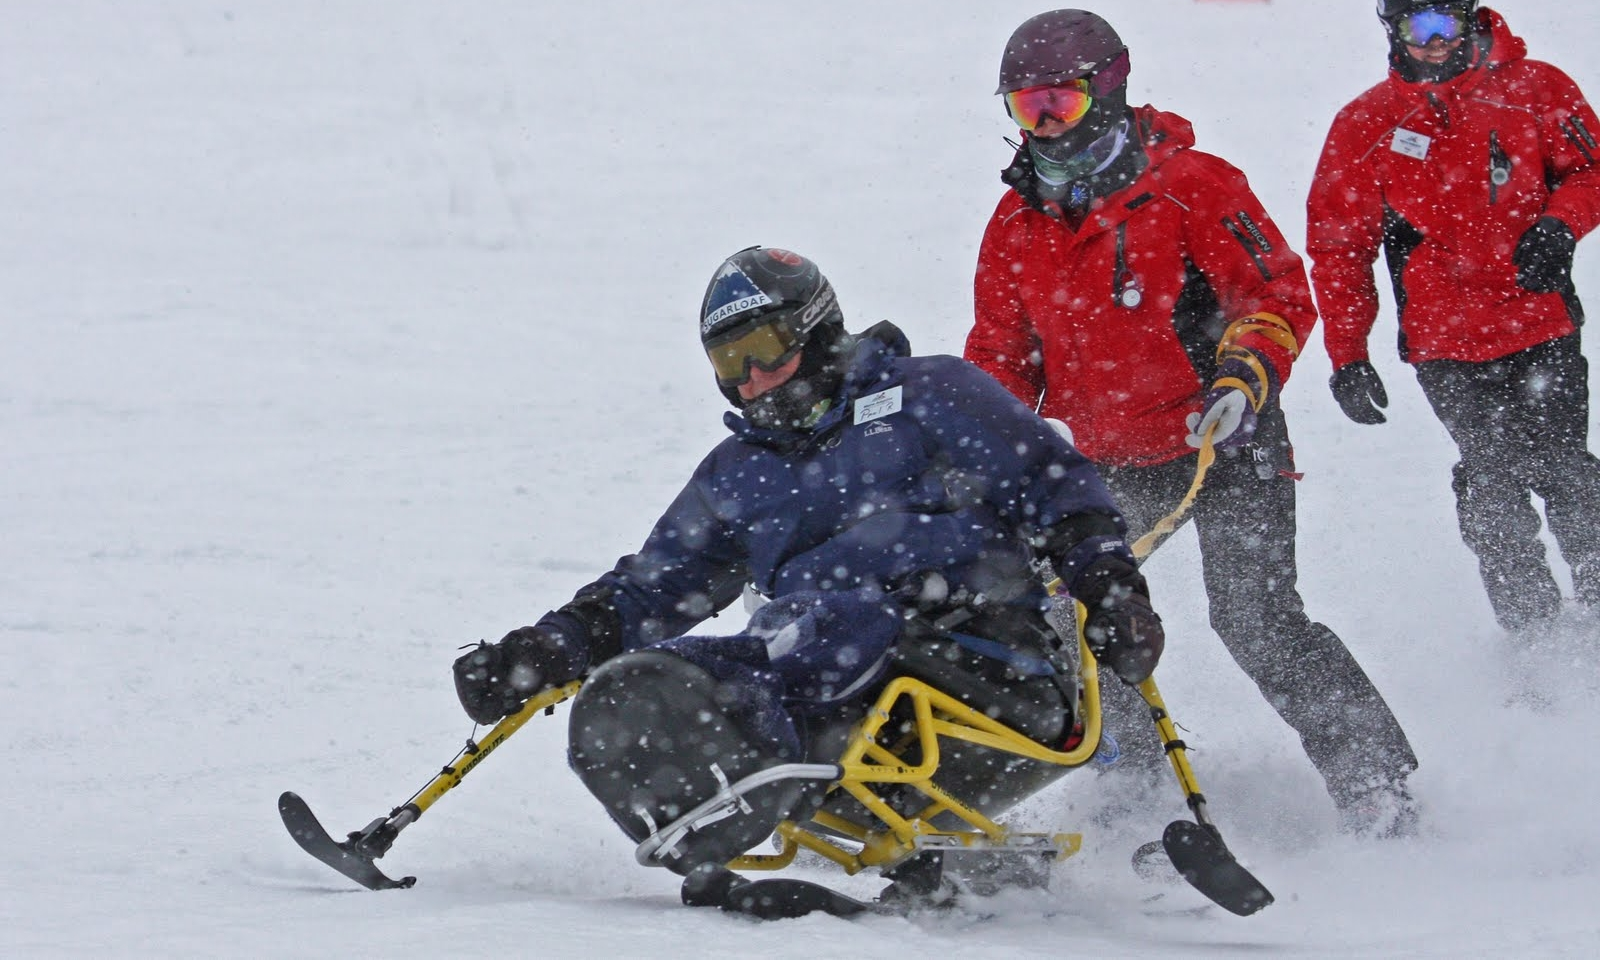 Alpine skiing and snowboarding -